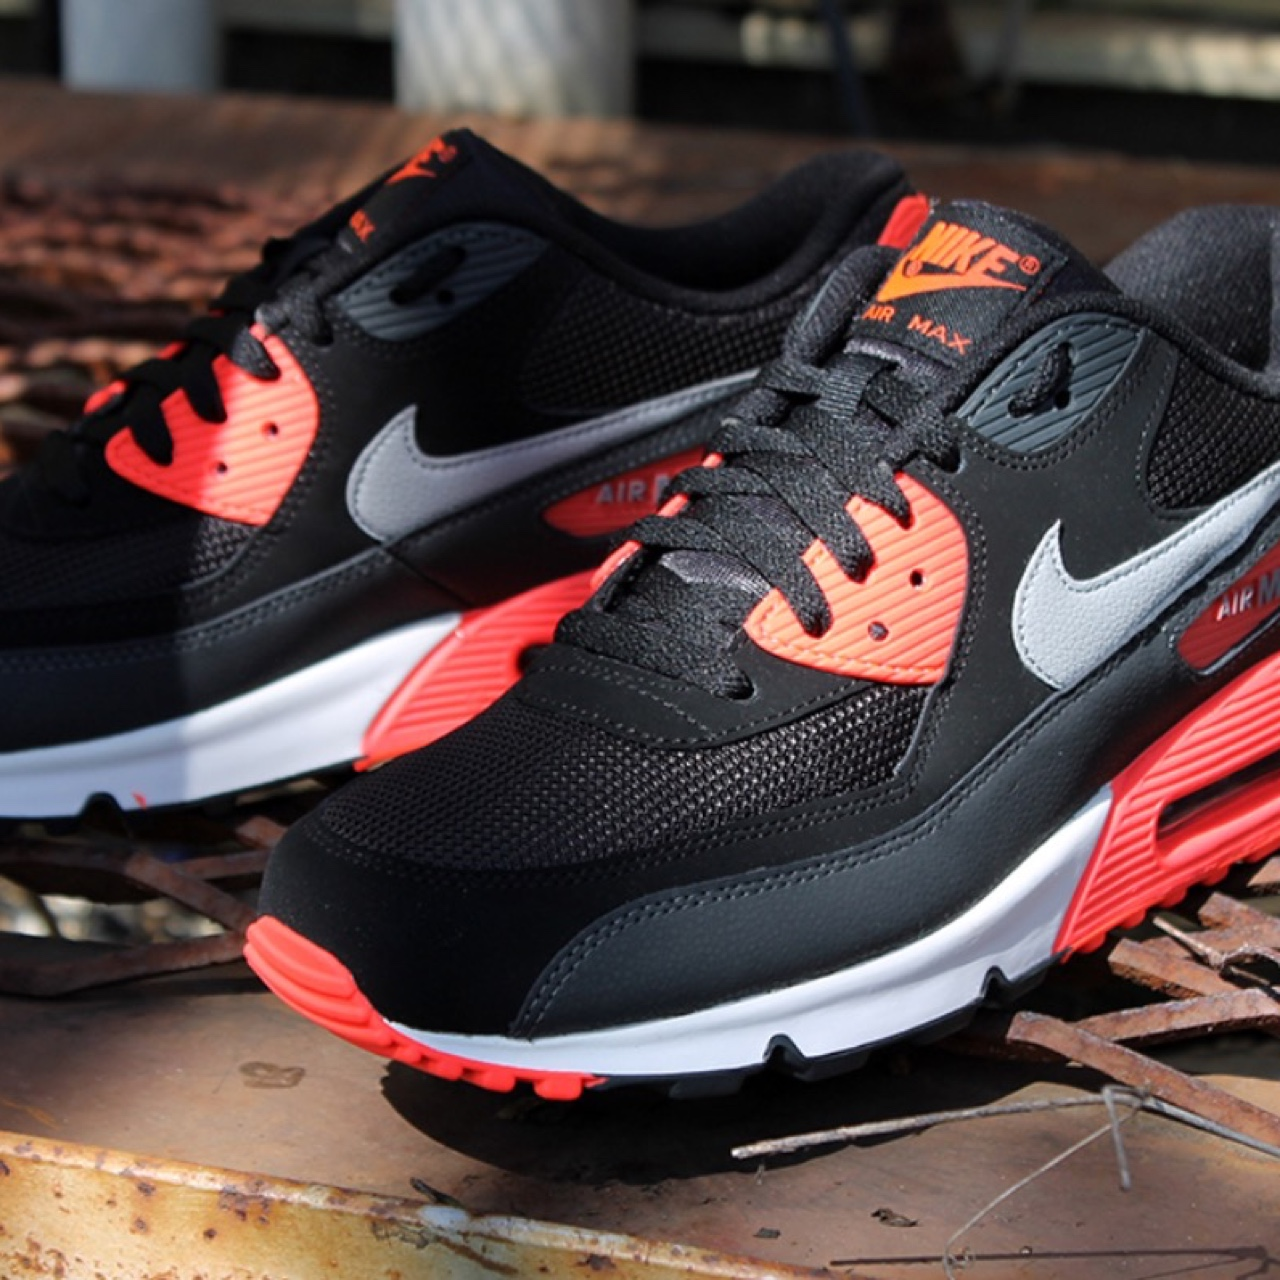 new concept d386c 6dff1 Nike air max 90 black infrared uk size 6 in perfect... - Depop